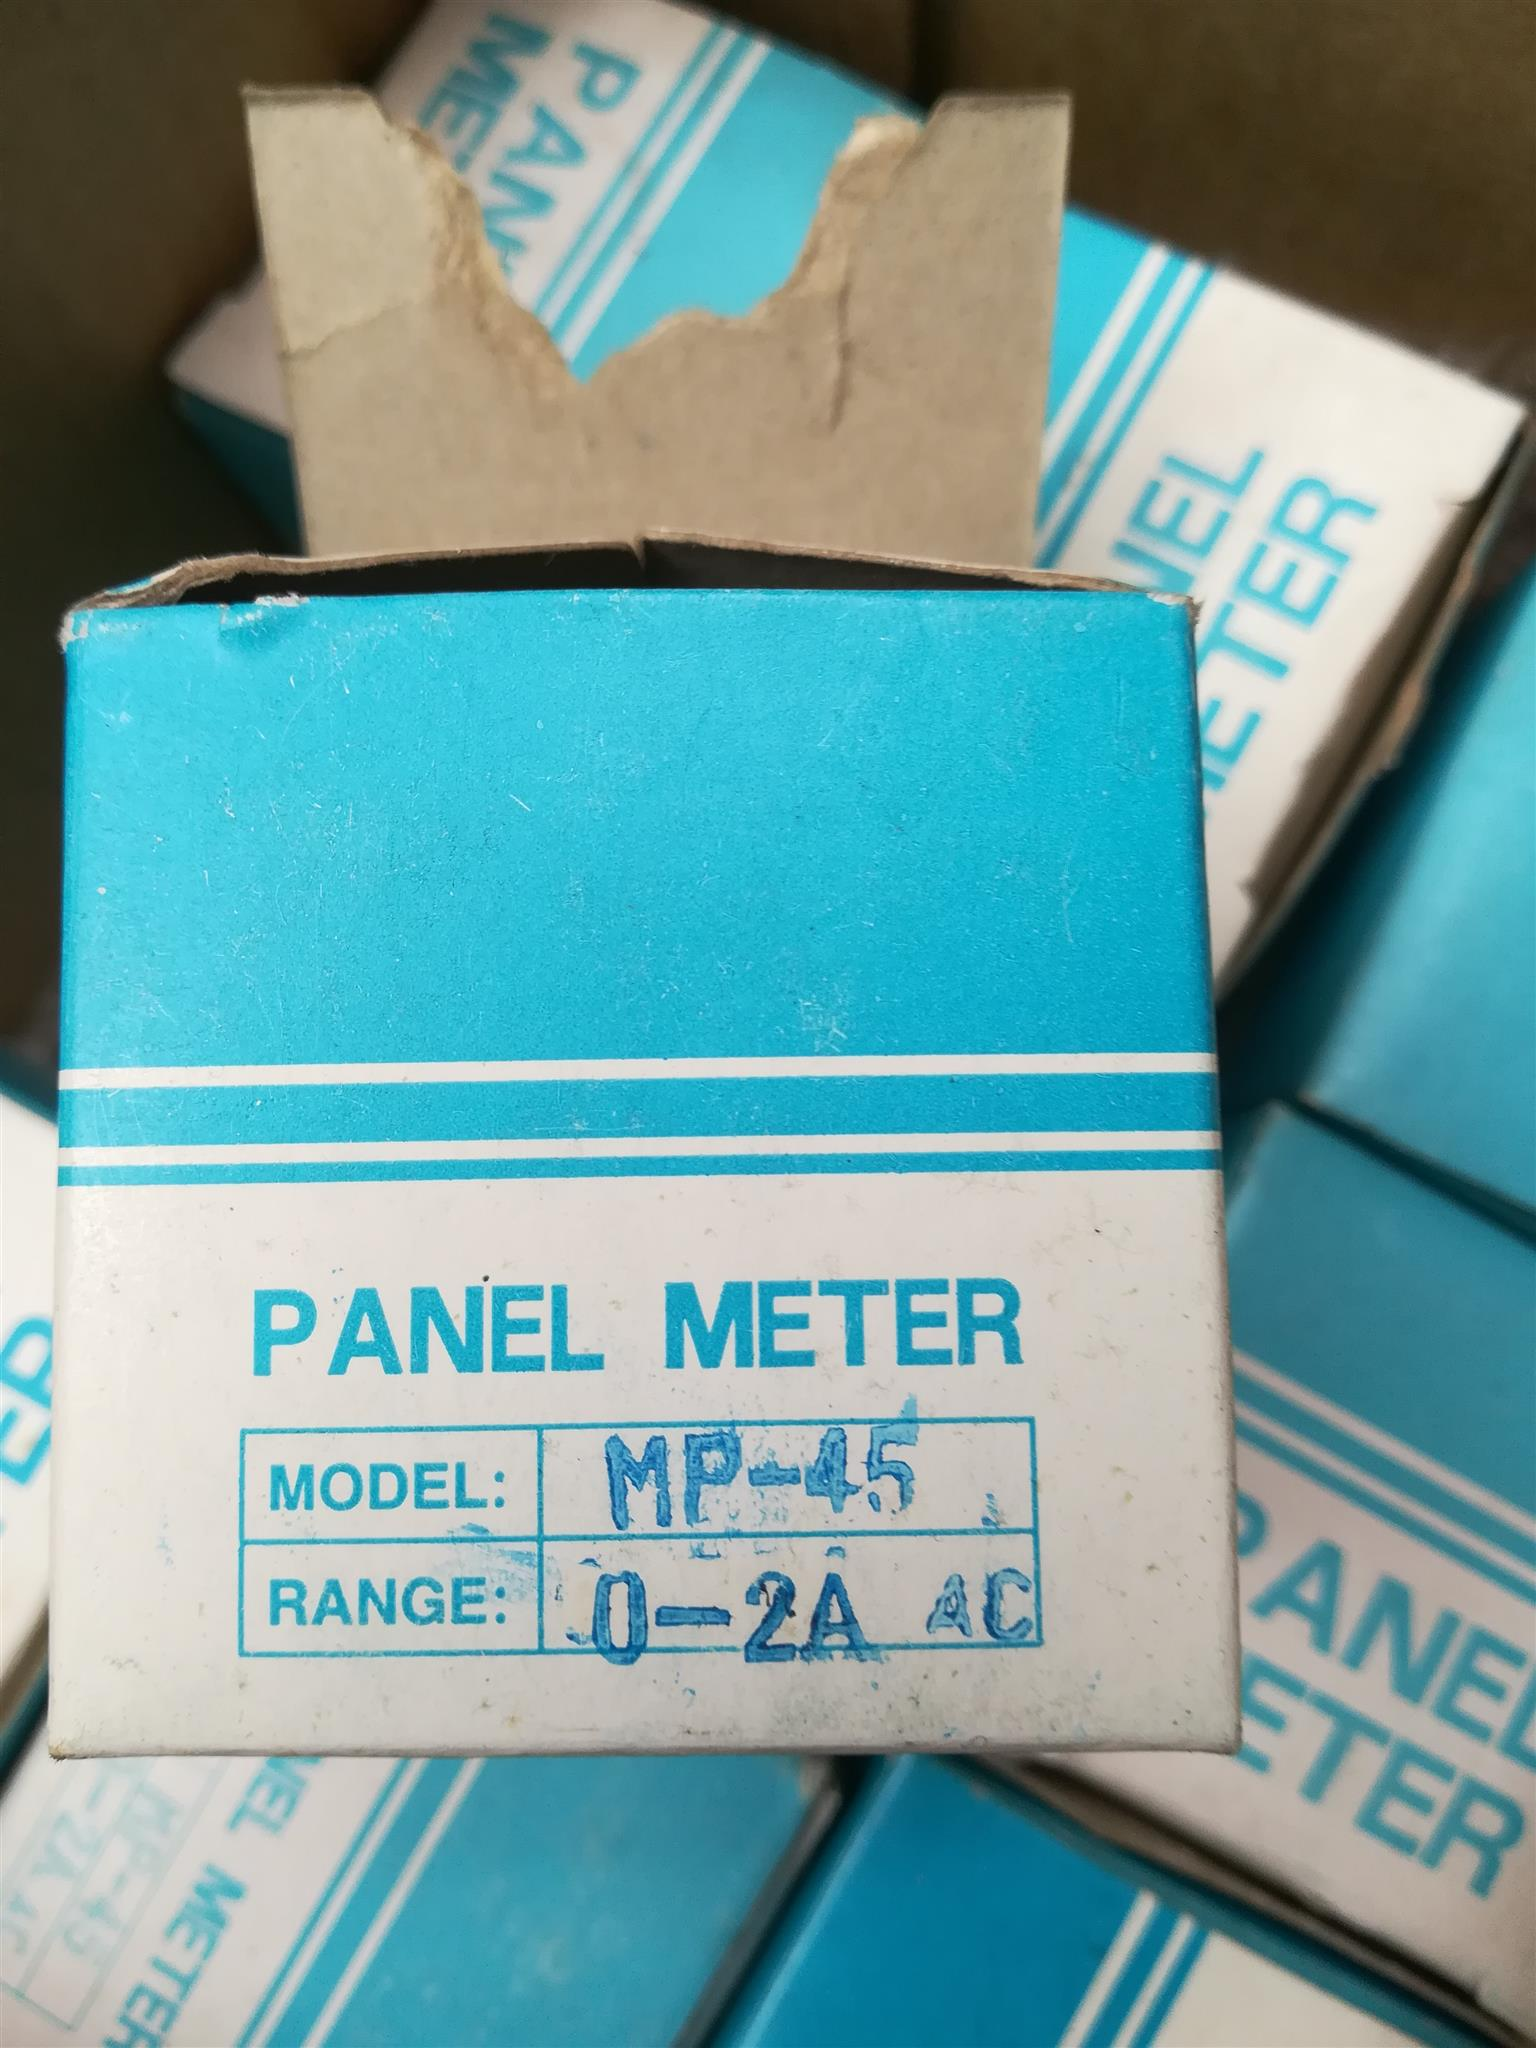 2A AC panel mount meters